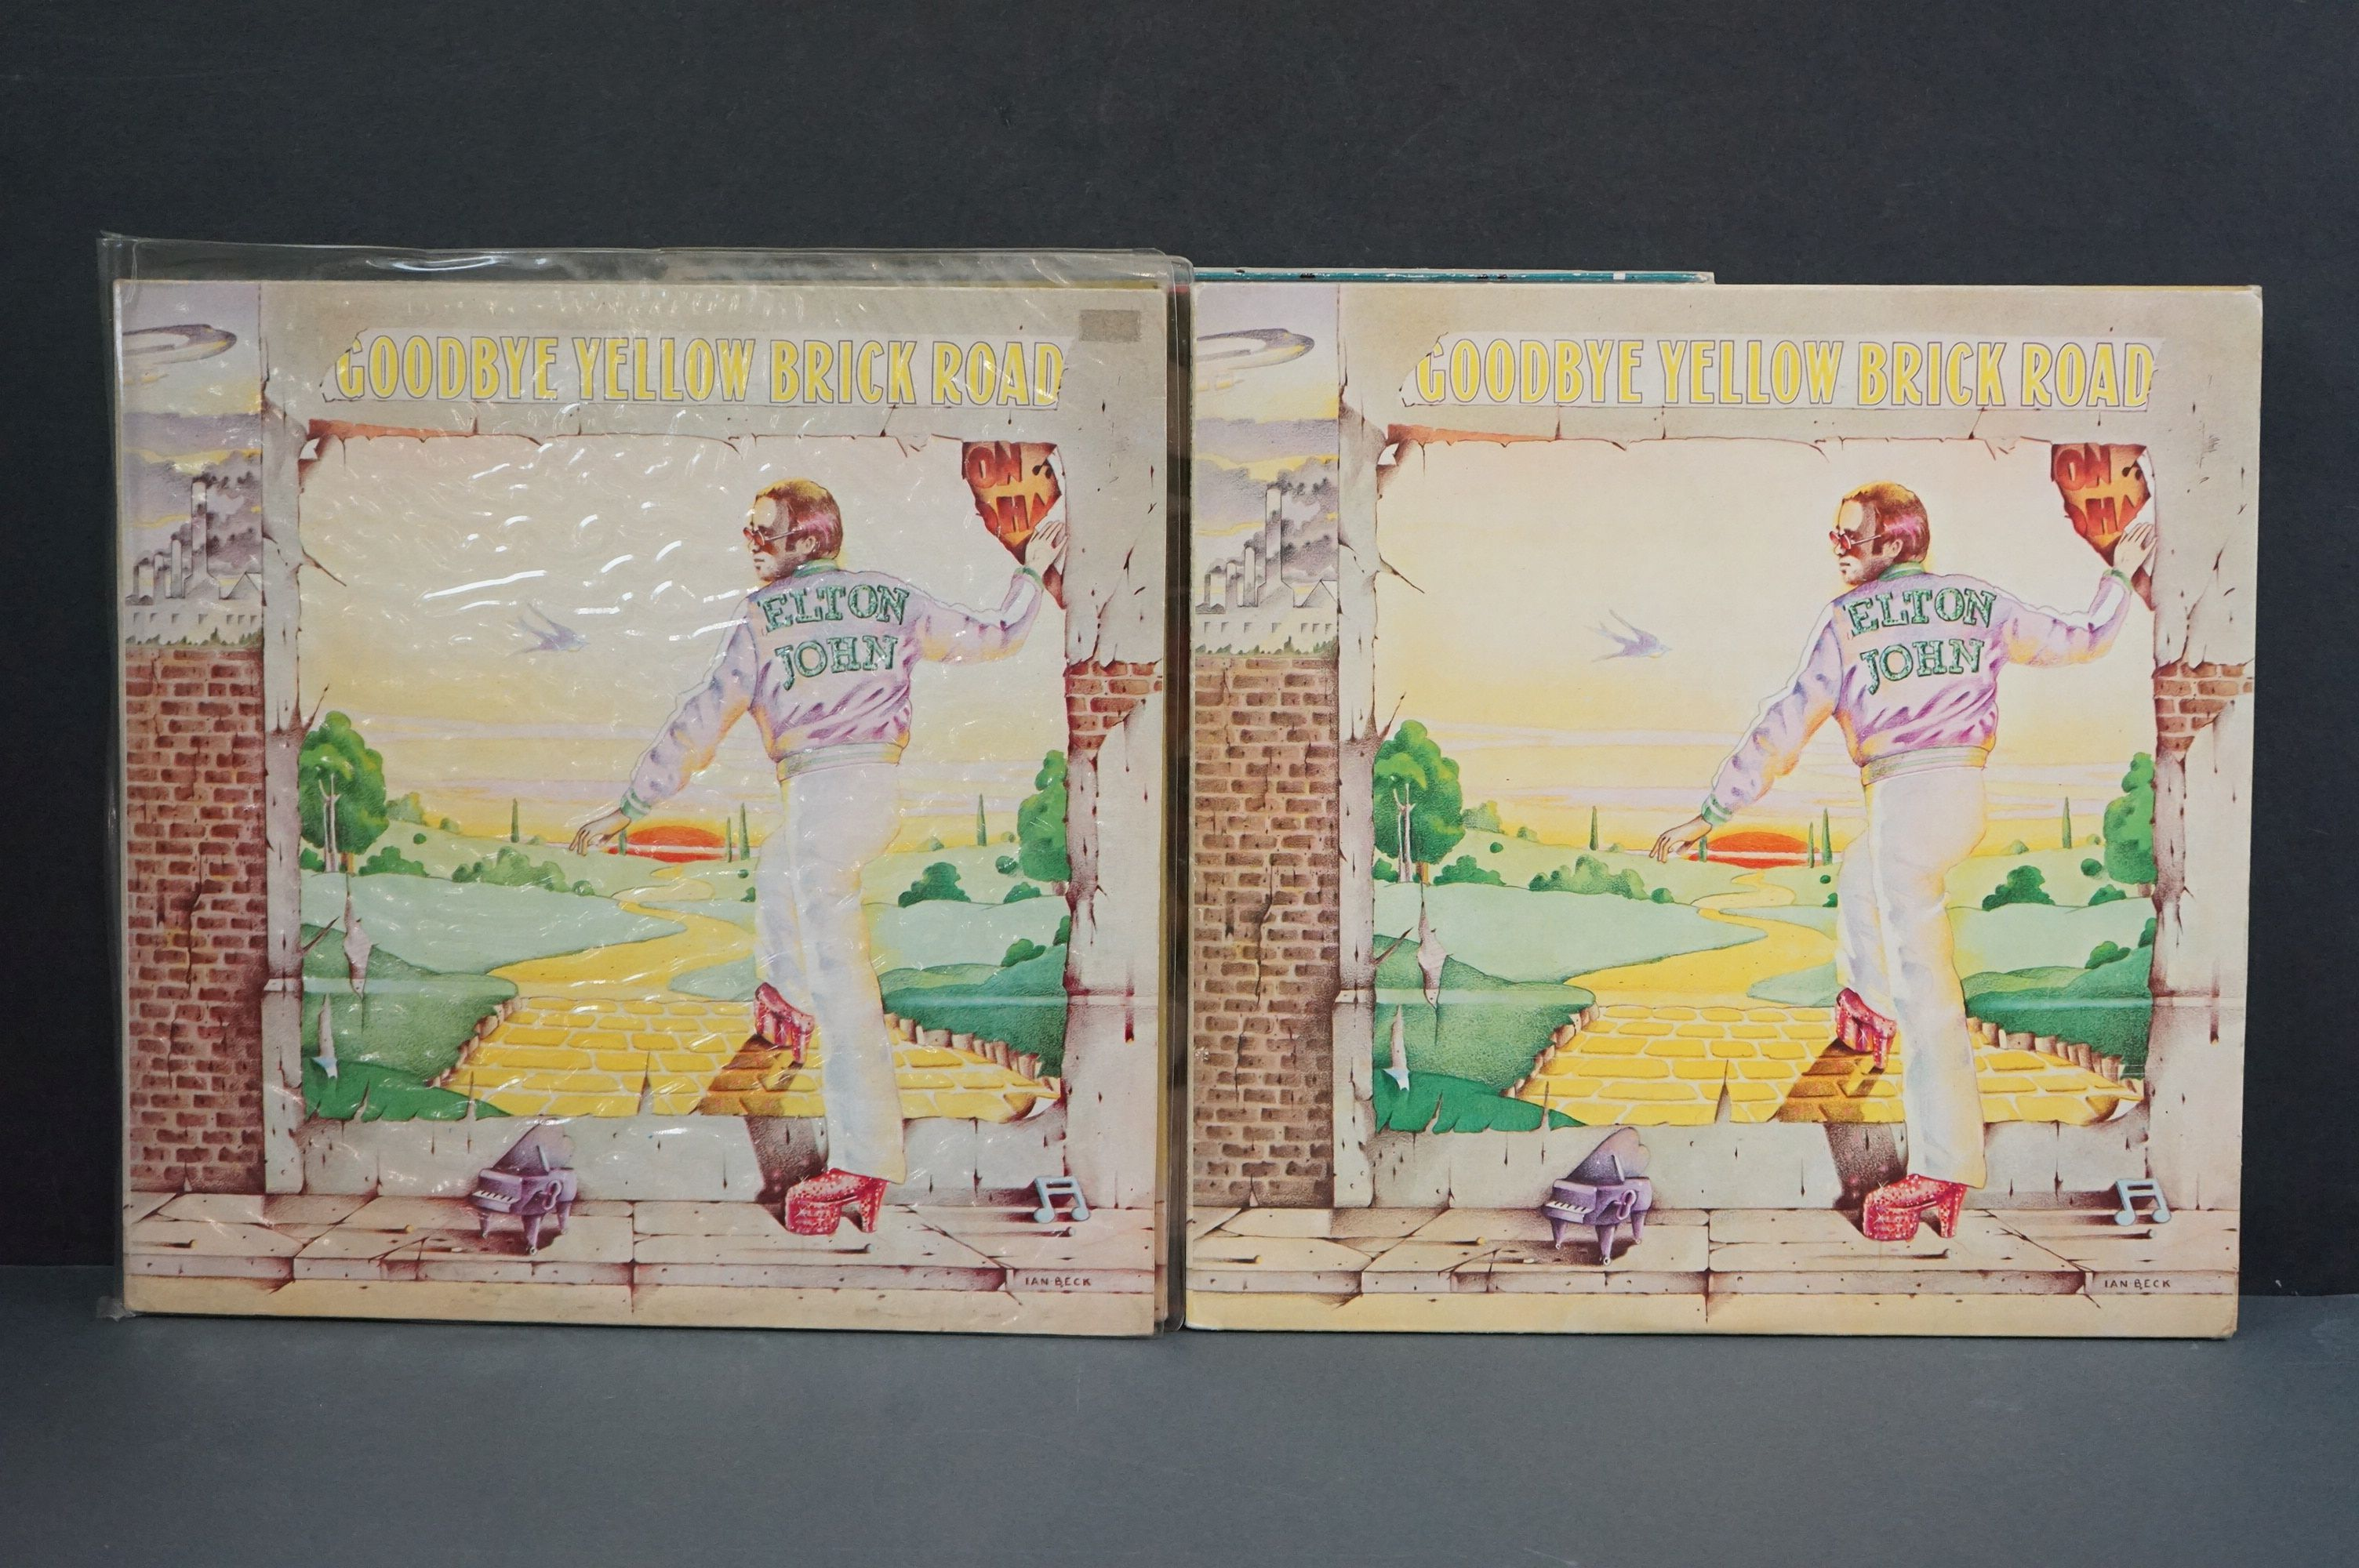 Vinyl - 16 Elton John LPs to include A Single Man, Blue Moves, Greatest Hits, Goodbye Yellow Brick - Image 10 of 16